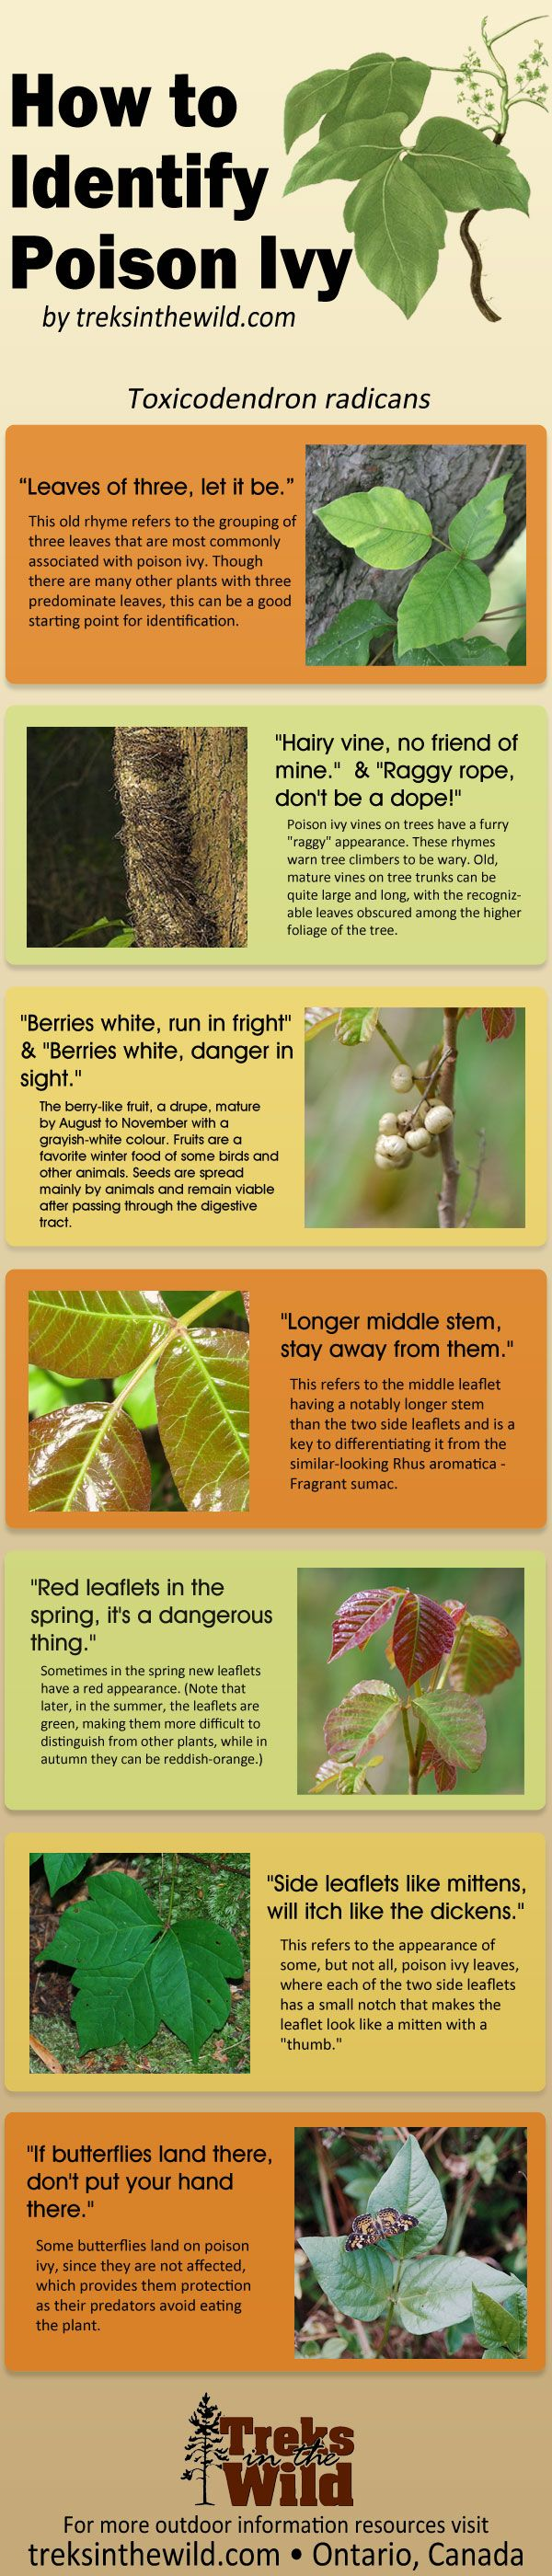 How to identify poisonous plants.  Useful when out on nature walks.